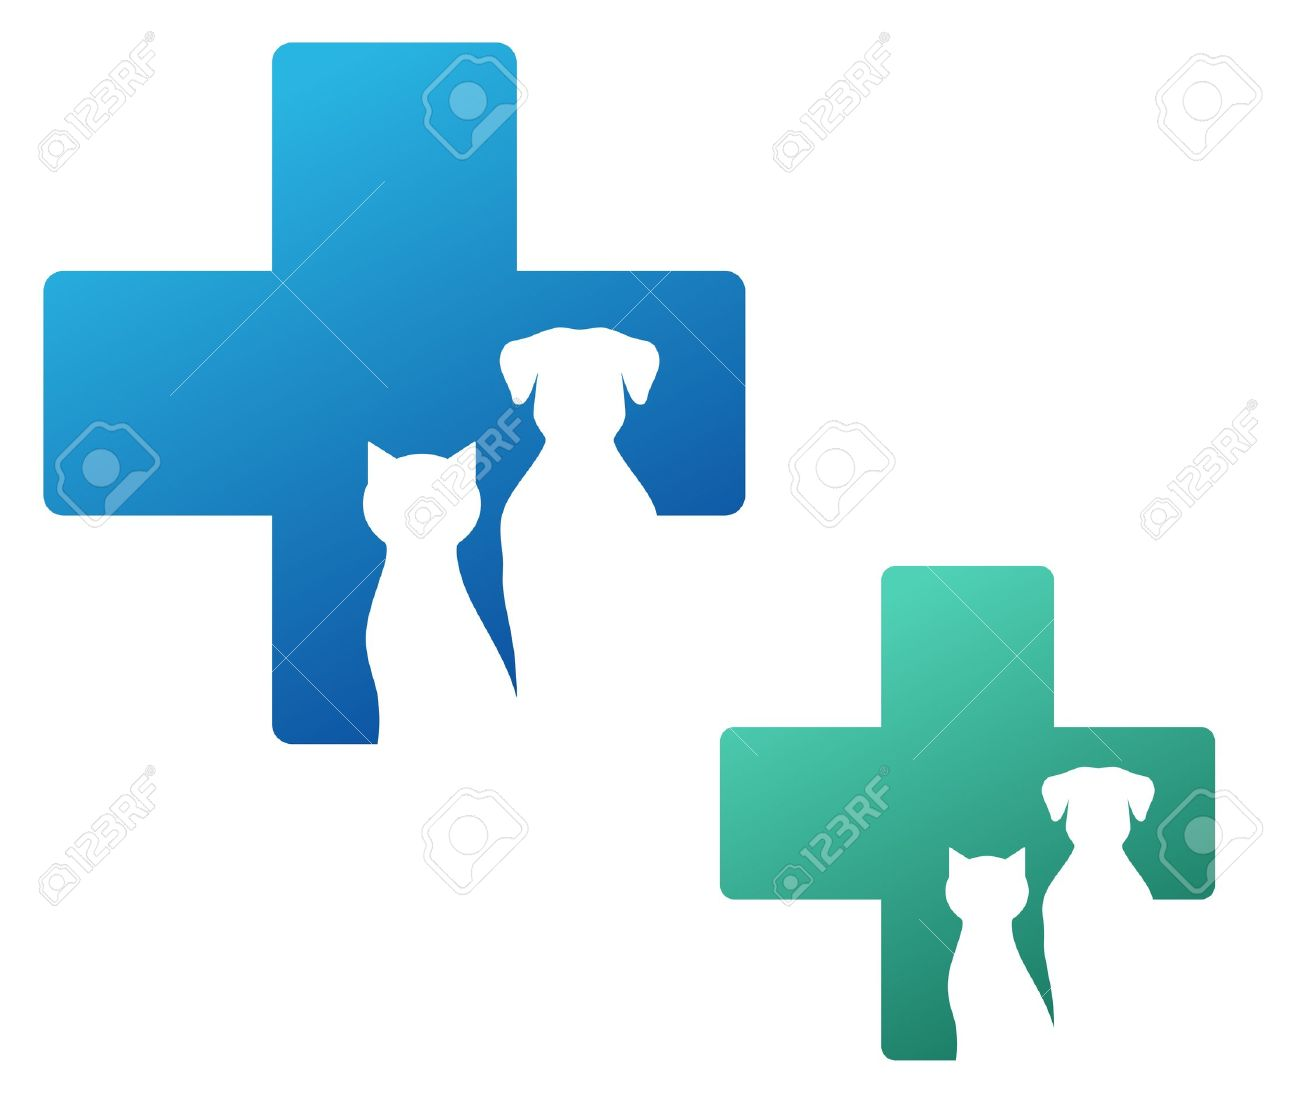 veterinary icon with cross and dog silhouette - 21458979